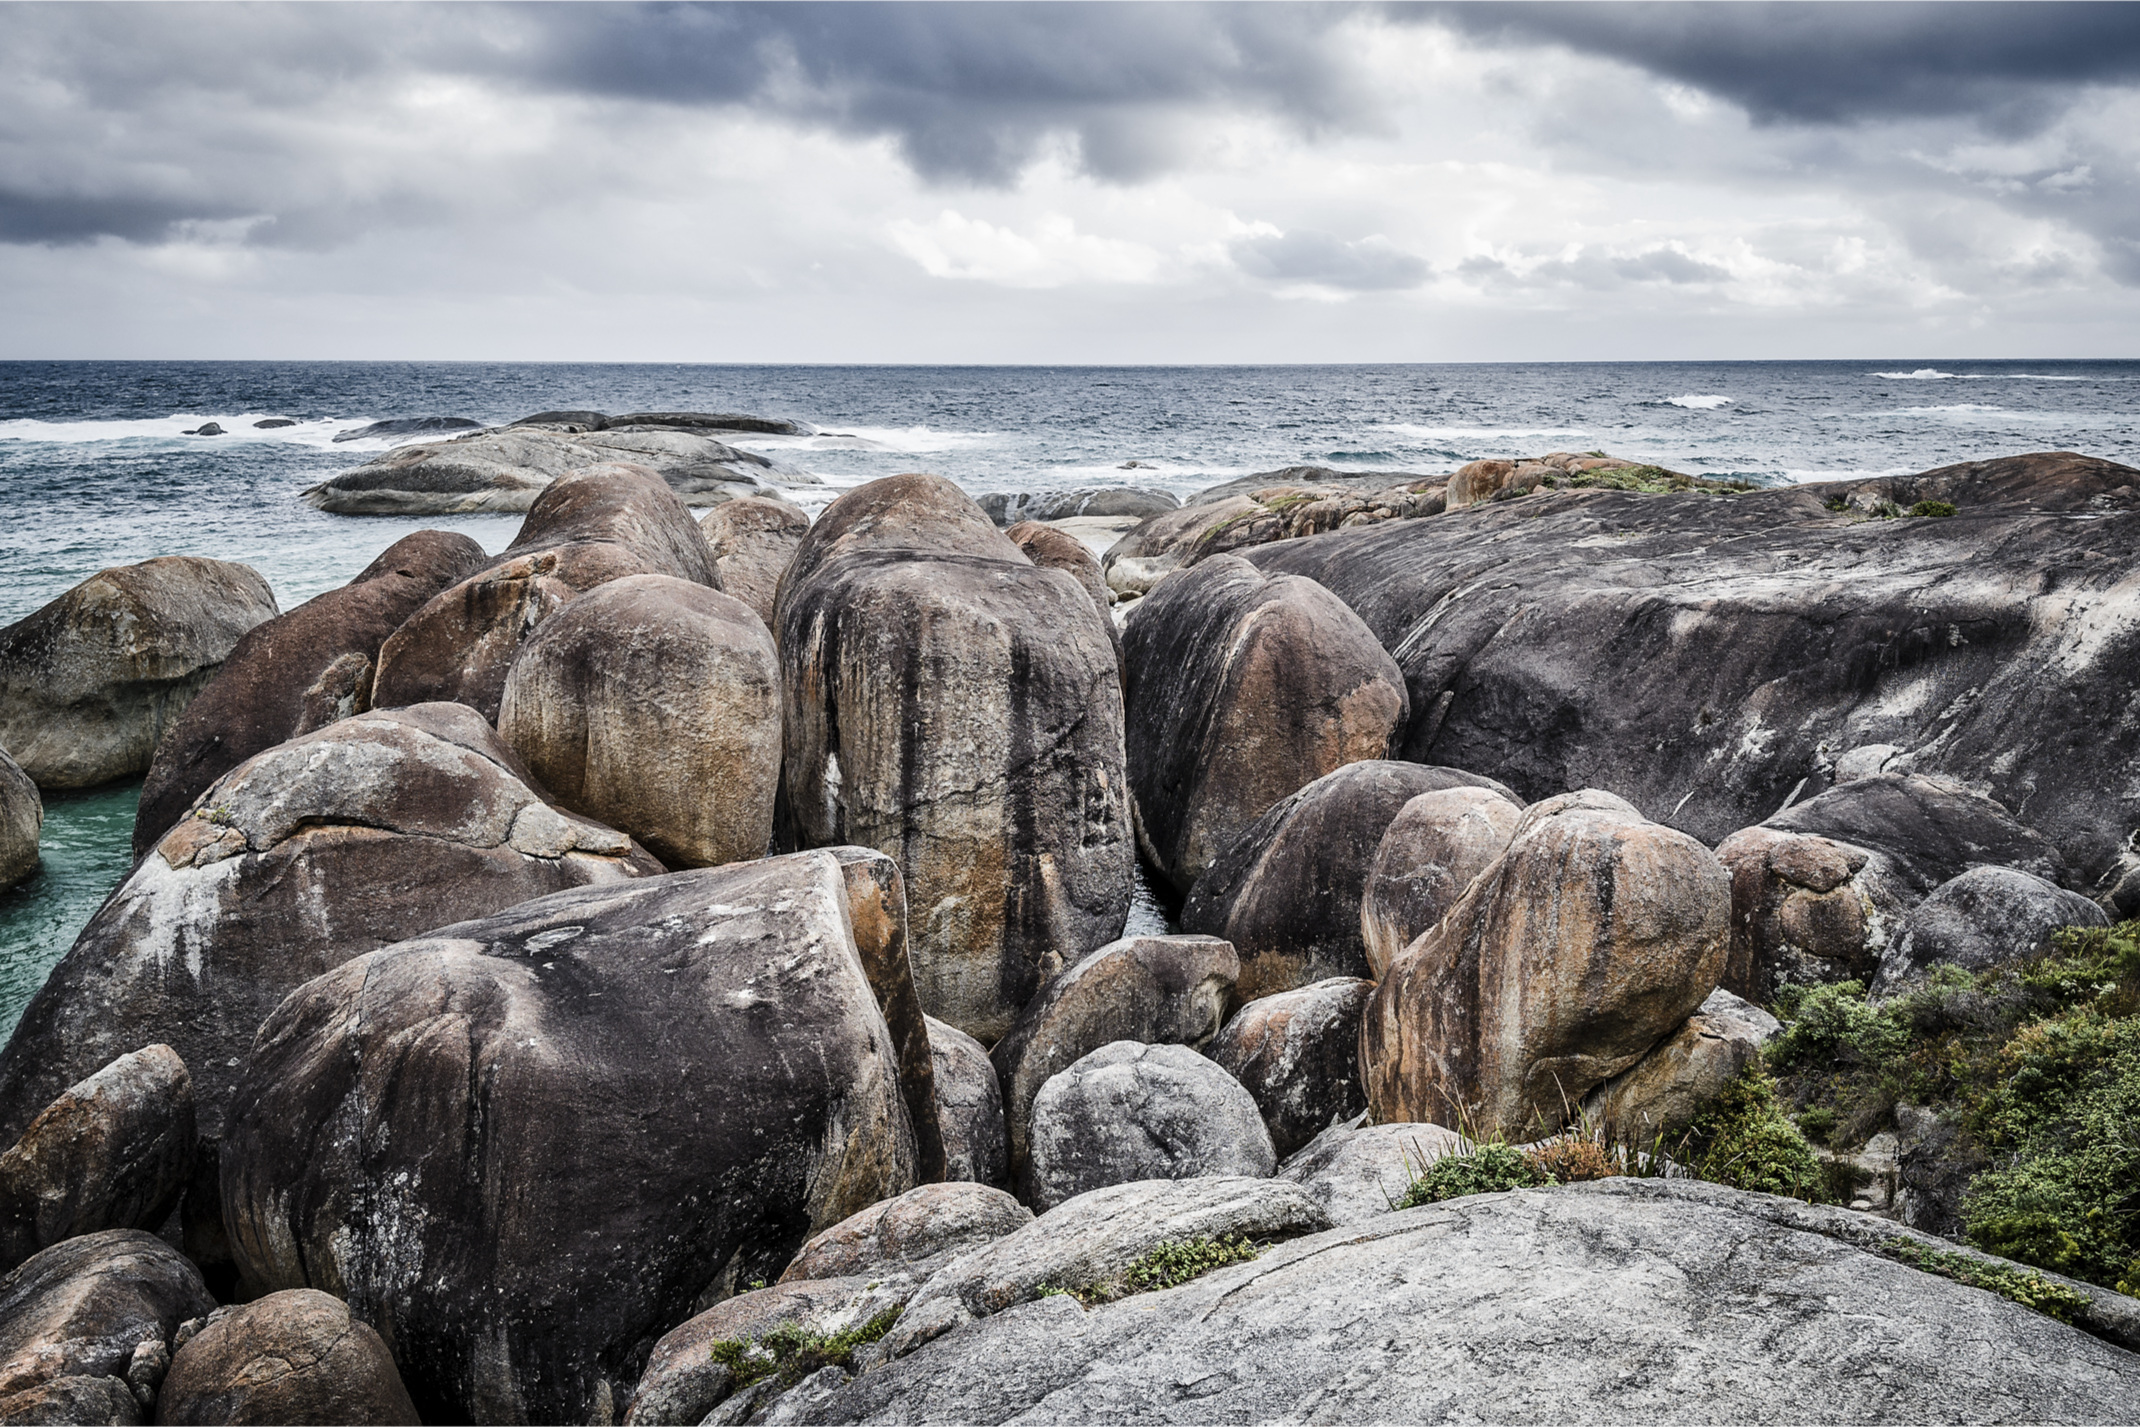 Elephant Rocks  is a sheltered beach in Western Australia, a few hundred metres east of Greens Pool. It is located about 15 km west from Denmark, in William Bay National Park. Its name is derived from a series of exposed rocks, which from several angles resembles a herd of elephants.